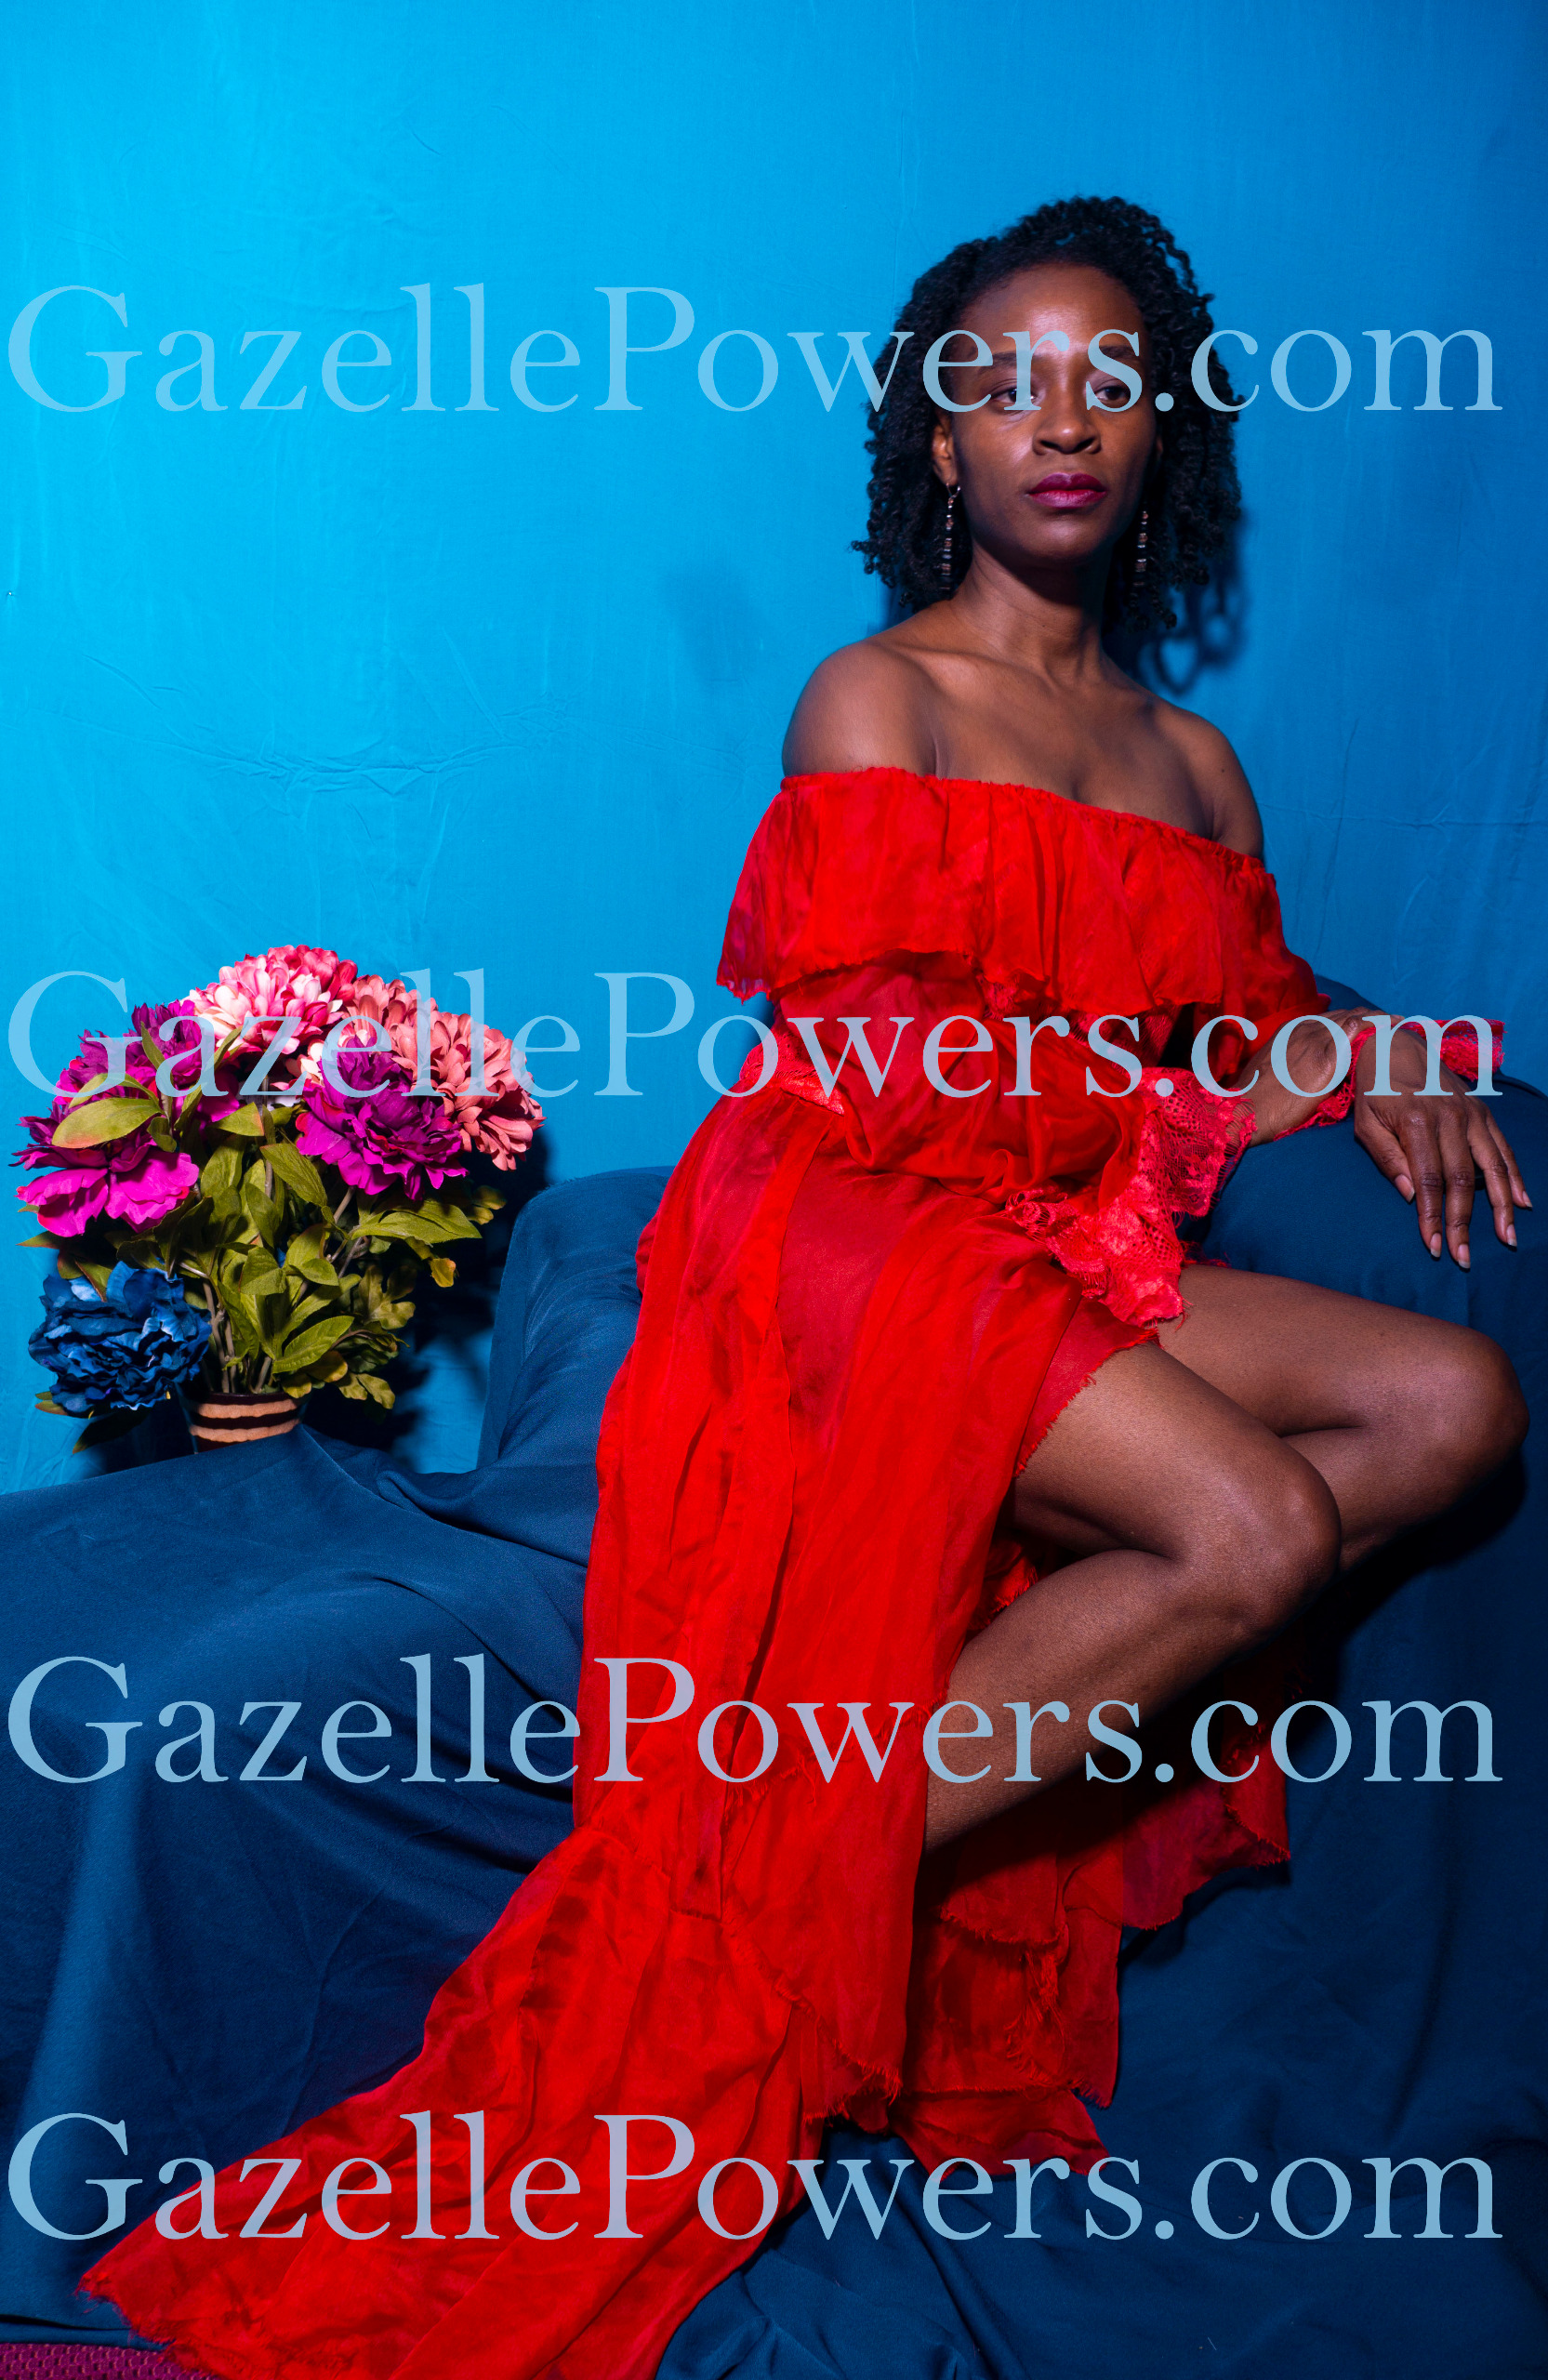 July 12th Session - Lady in Red #7